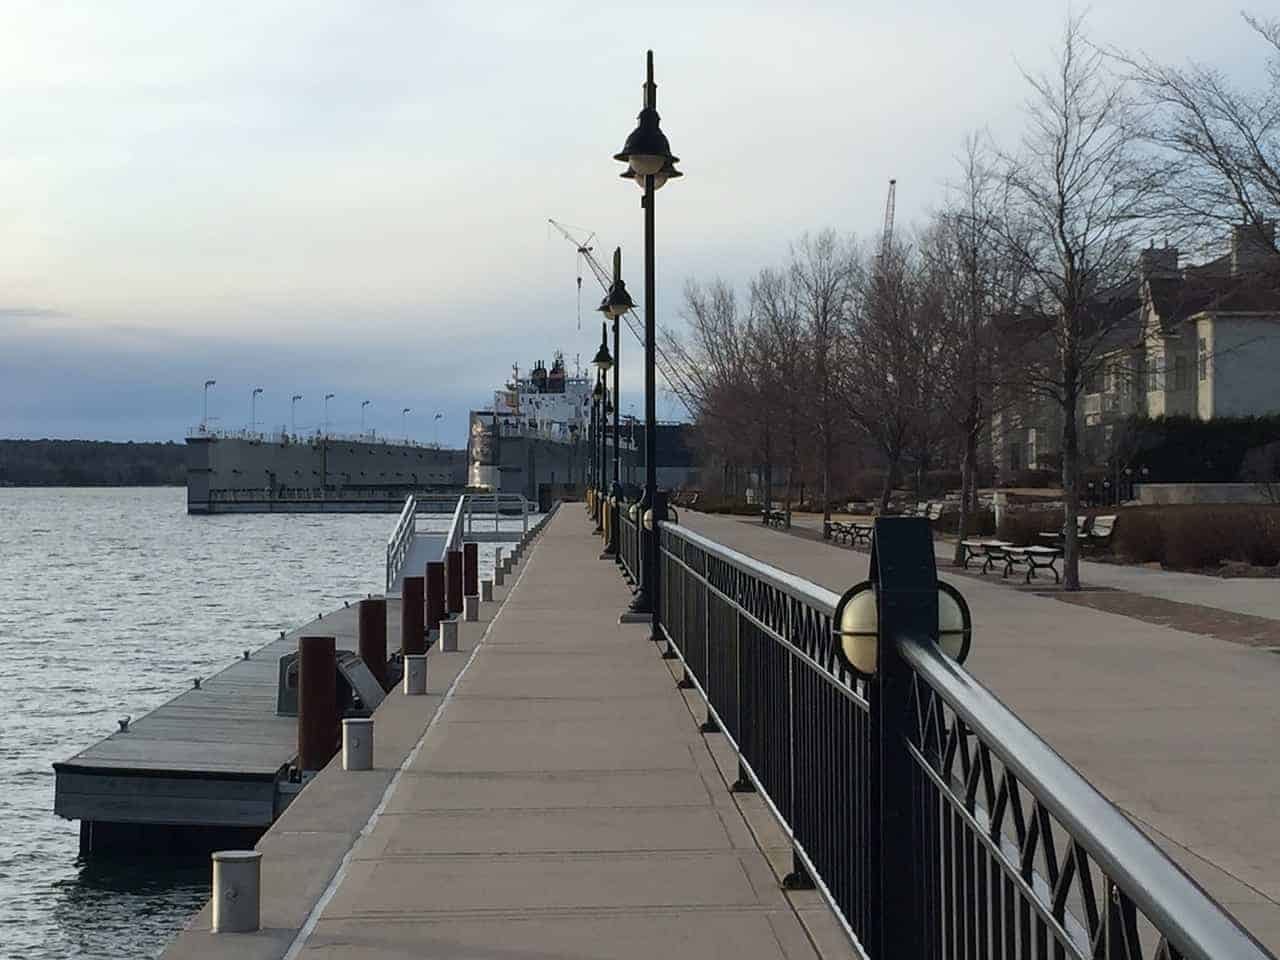 the best day trips in wisconsin, kettle moraine, forest, bayfield, lake side, lake geneva, milwaukee, madison, weekend getaway, day trip, excursion, national , hiking, outdoor, best weekend trips wisconsin